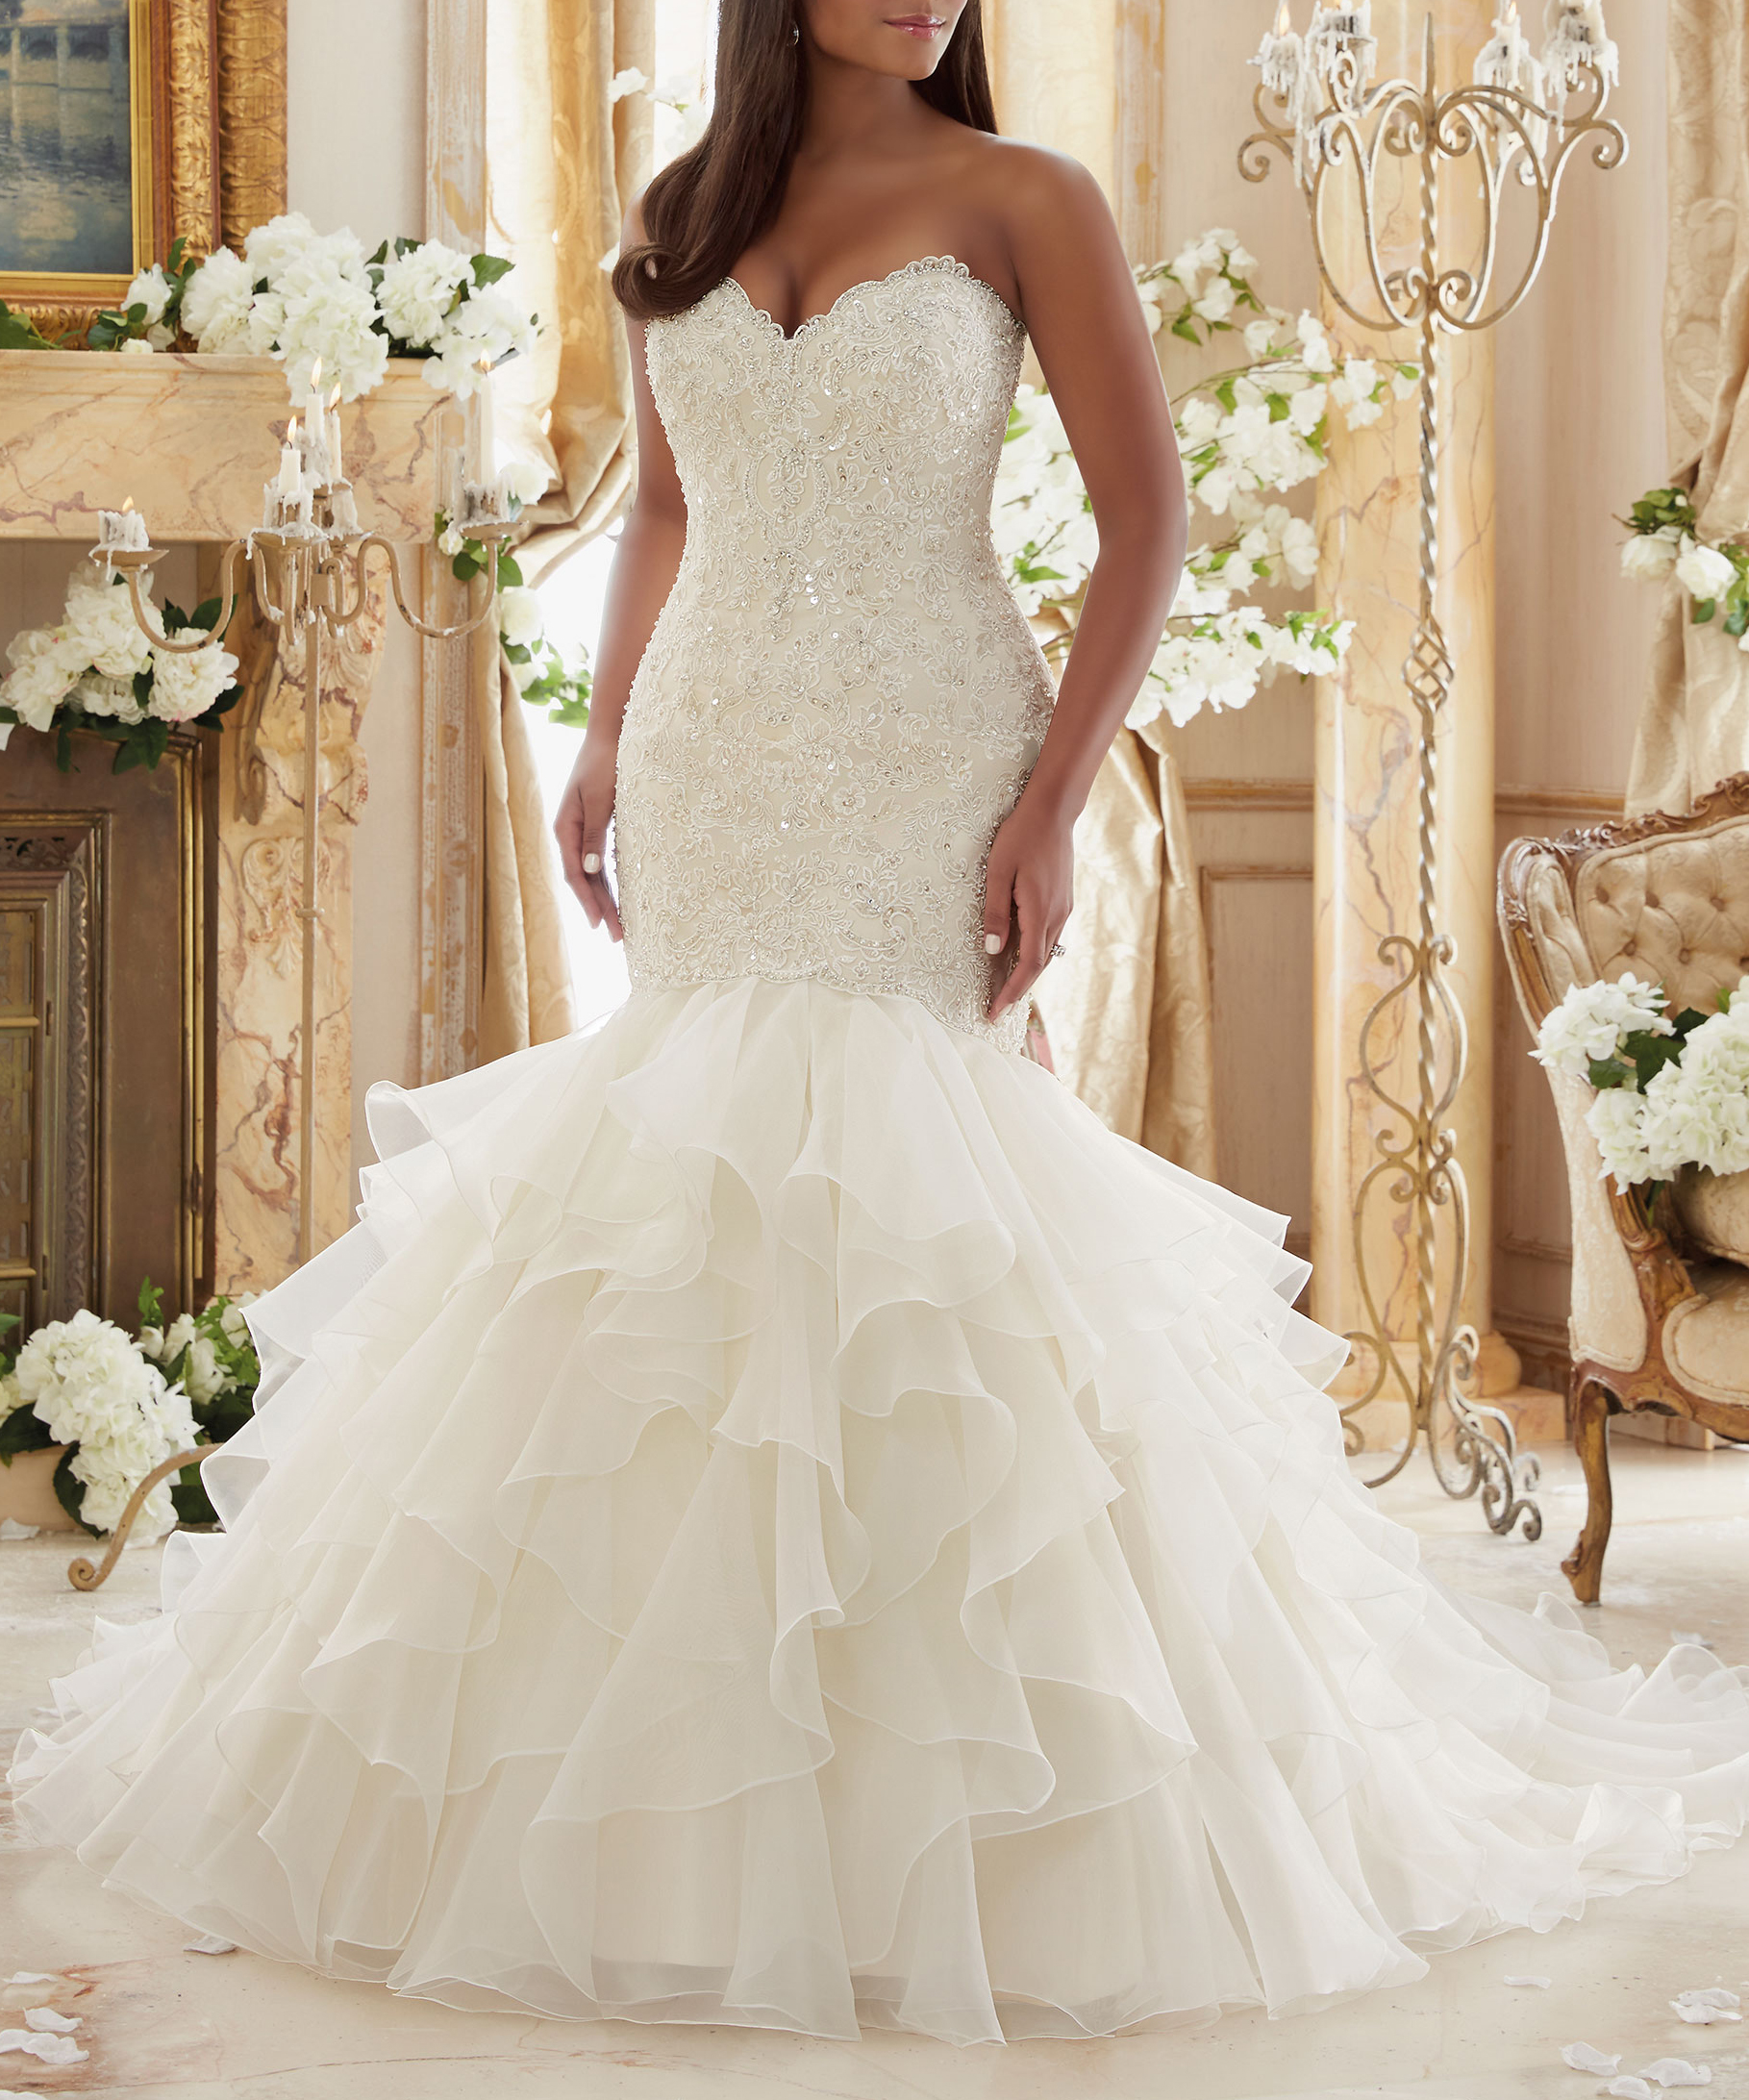 Best Plus Size Wedding Dresses — Shop Beautiful Wedding Gowns for ...